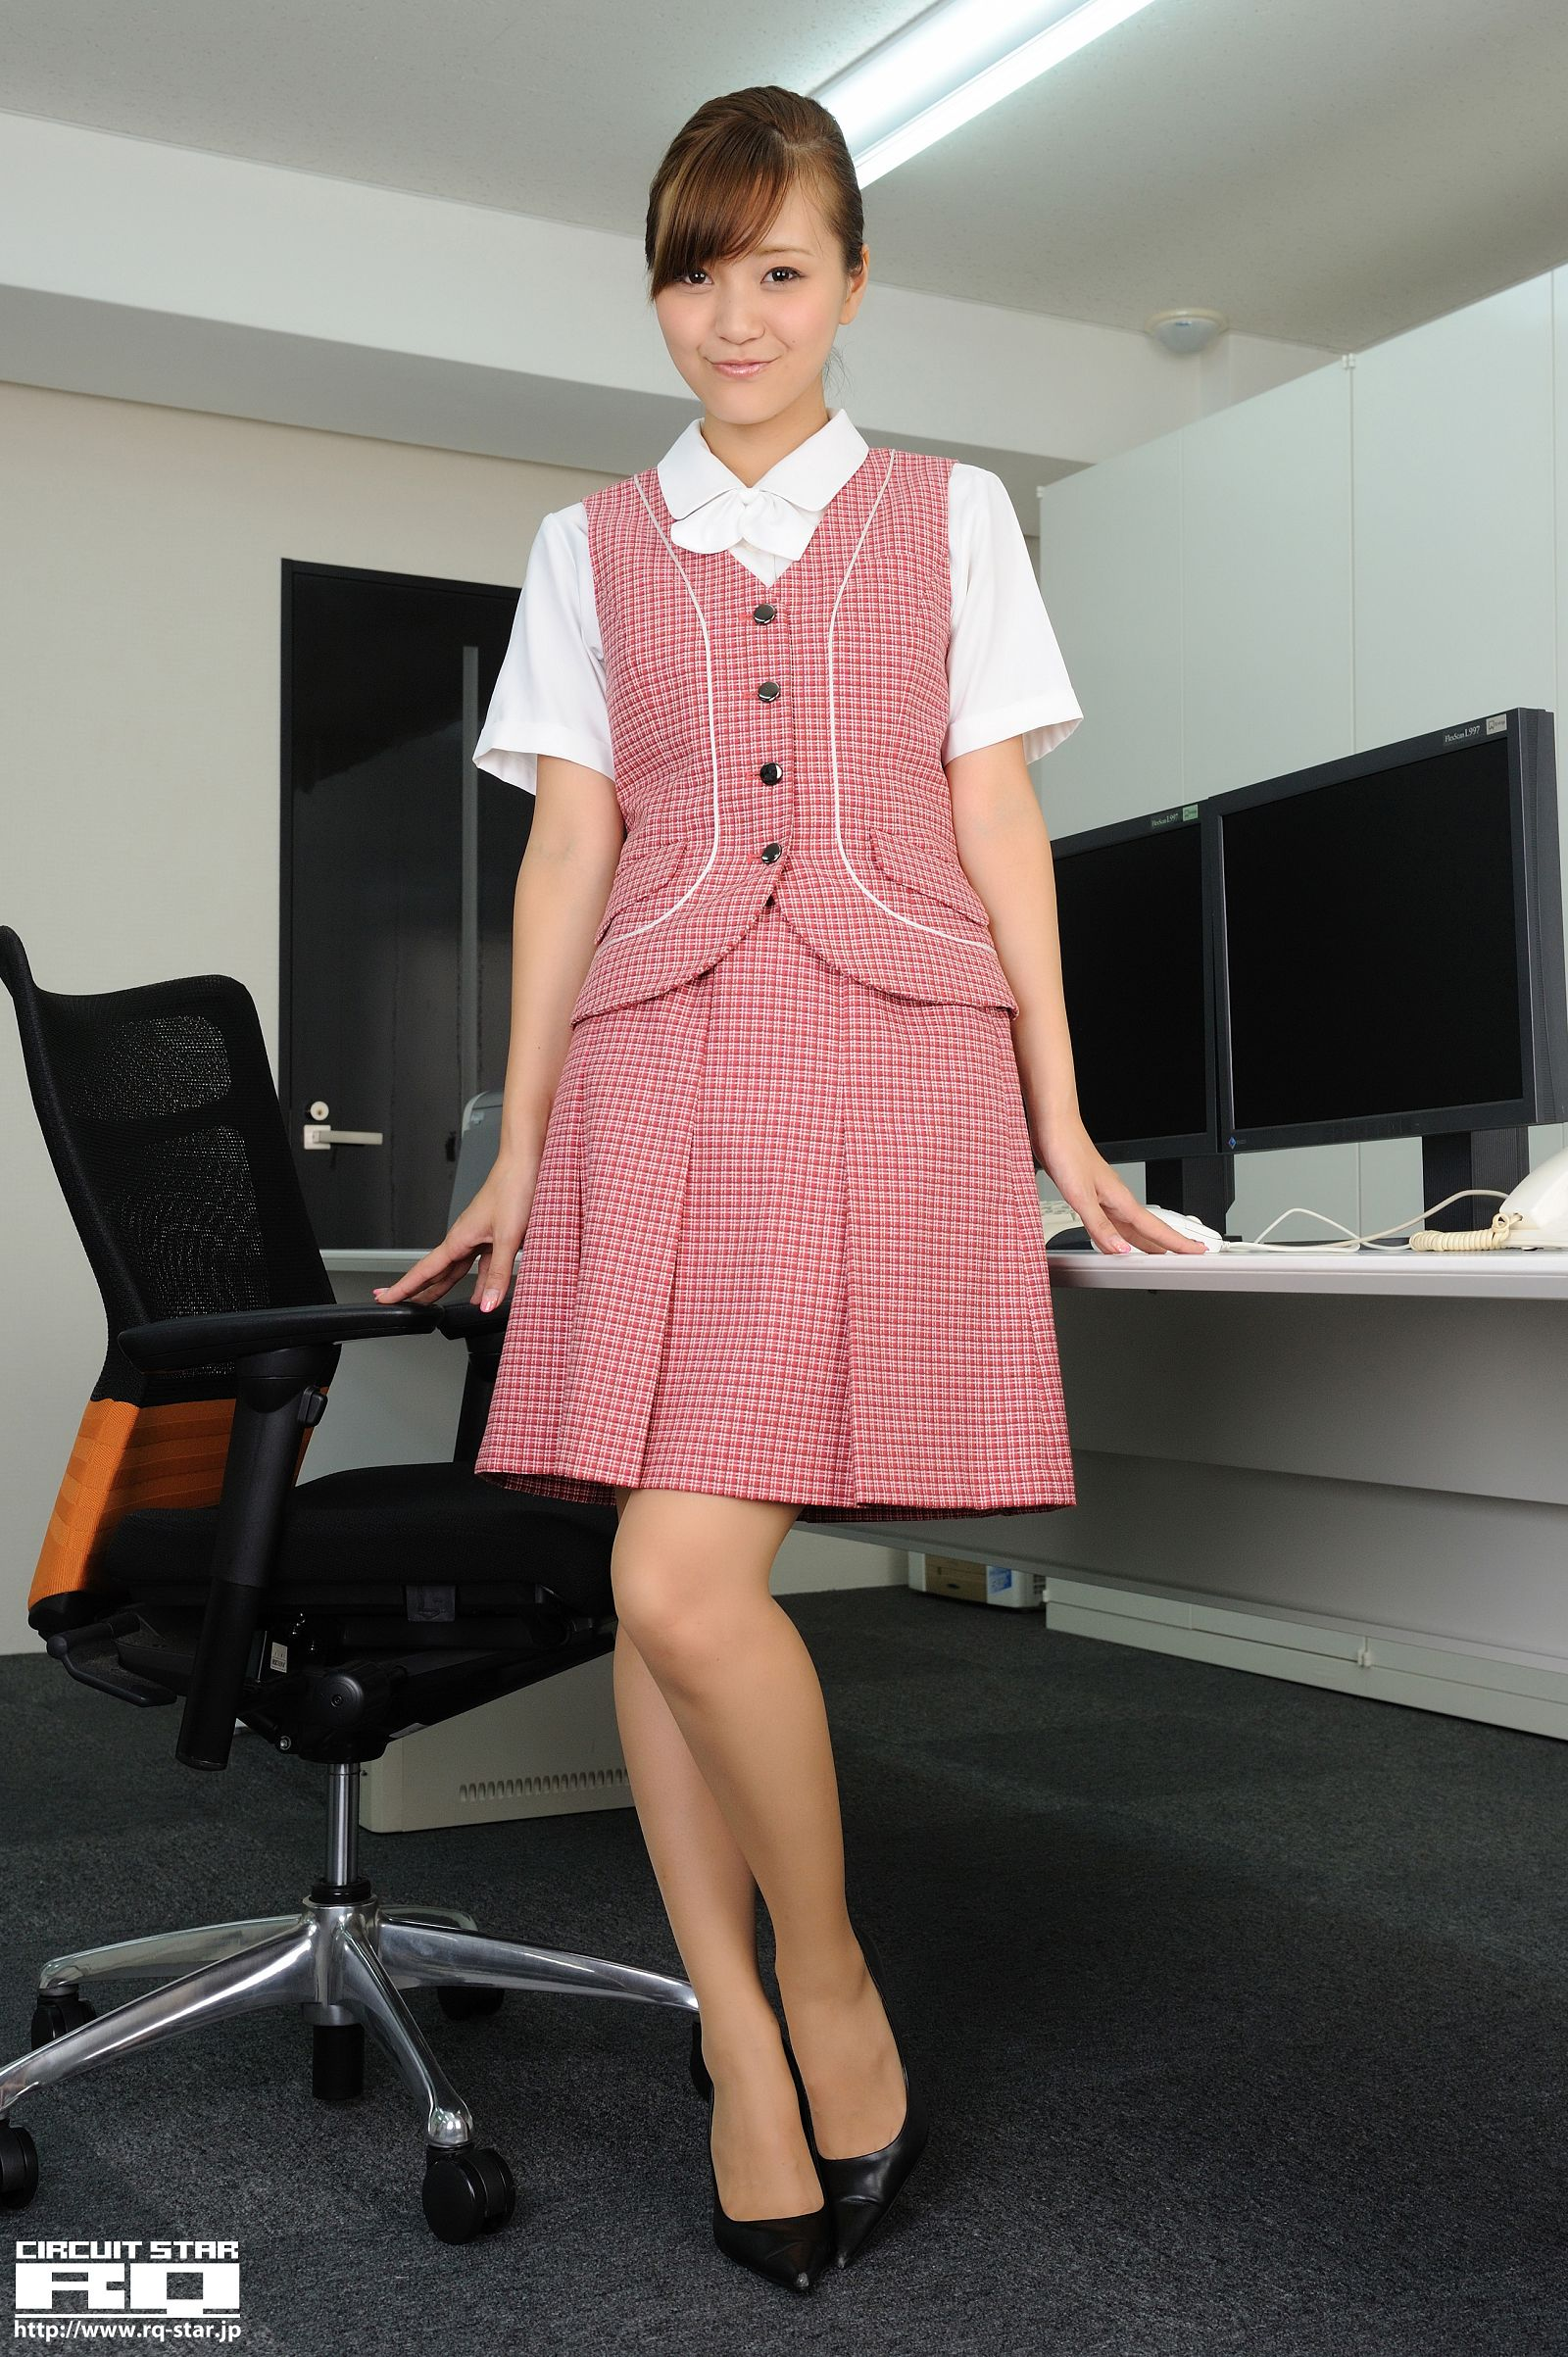 [RQ STAR美女] NO.00537 Mina Momohara 桃原美奈 – Office Lady[120P] RQ STAR 第1张